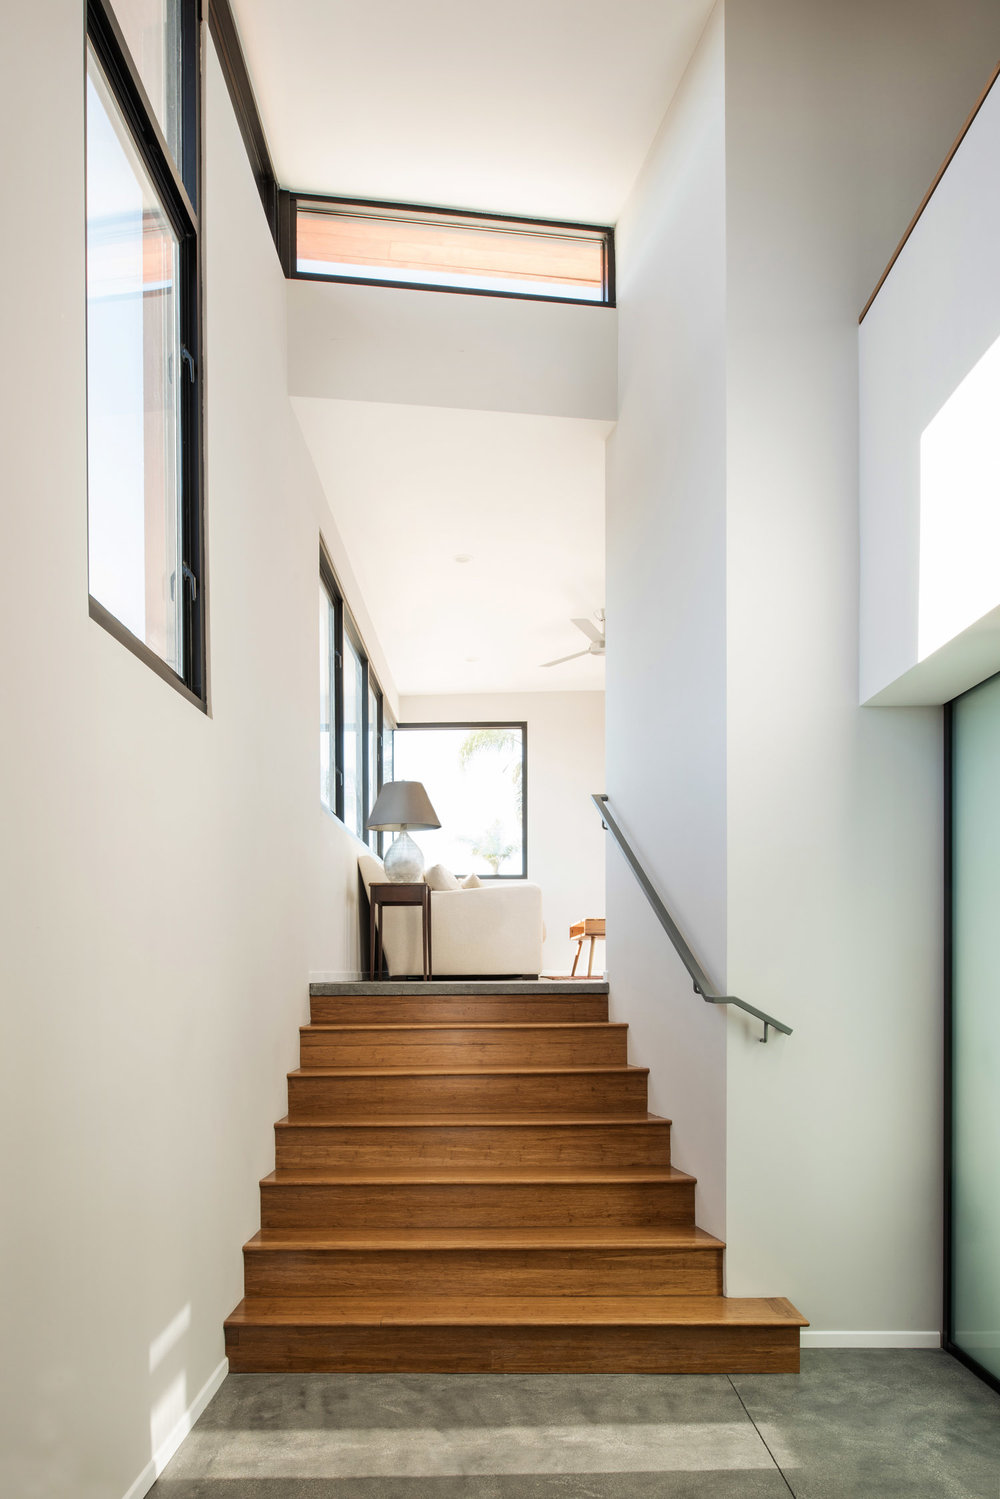 Apartment stairway by BV Architecture, stair details, architecture details